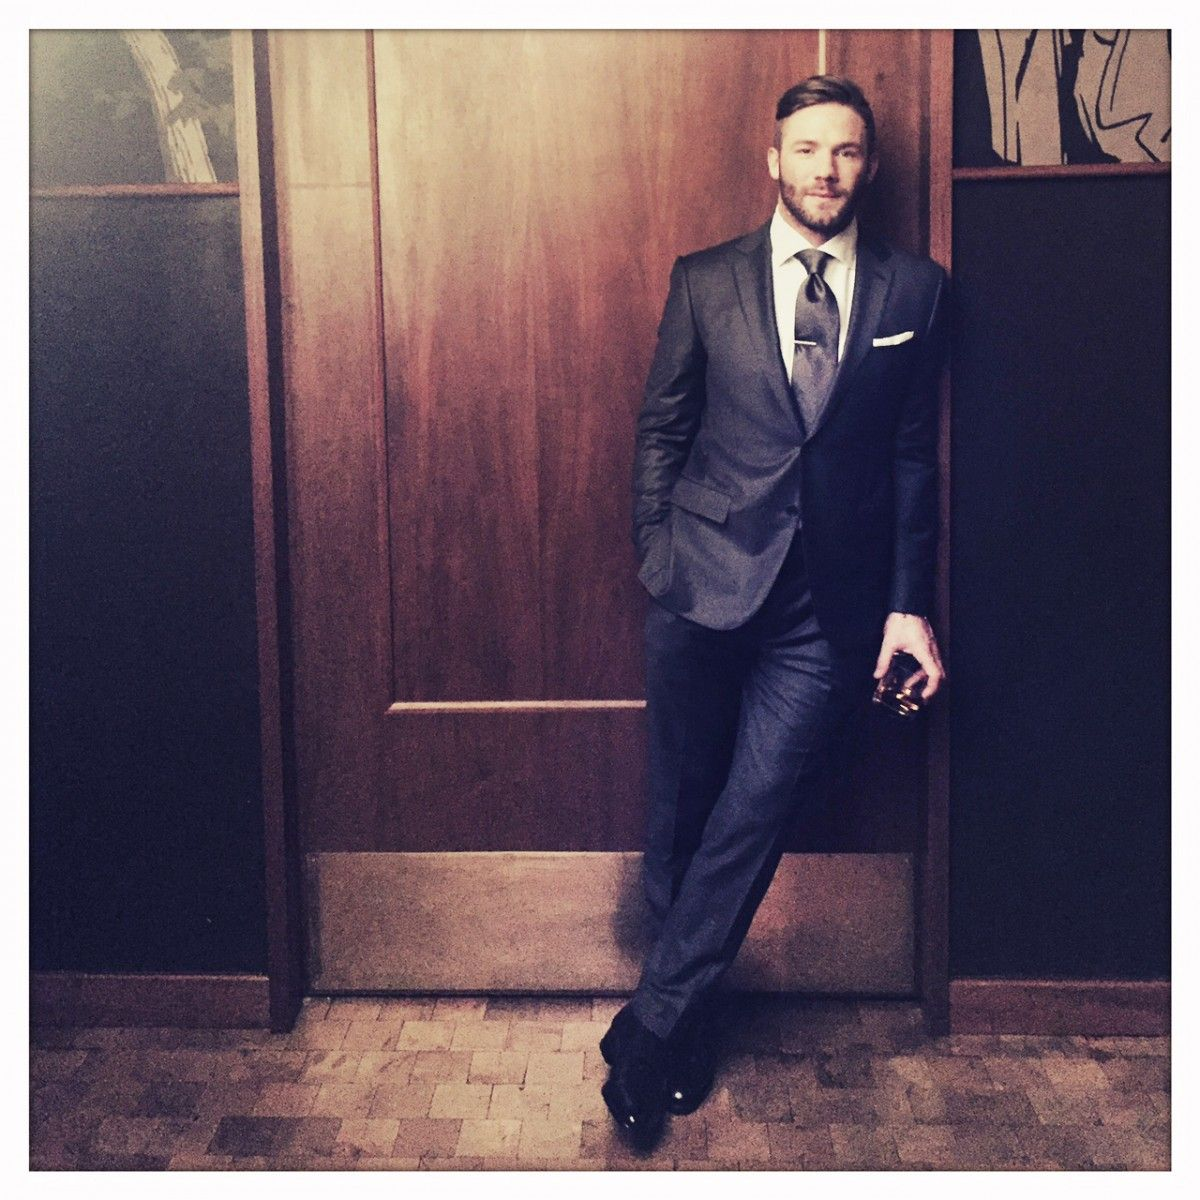 Like All Great Proathlete Breakthroughs, Julian Edelman Embraced The Drive  And Determination To